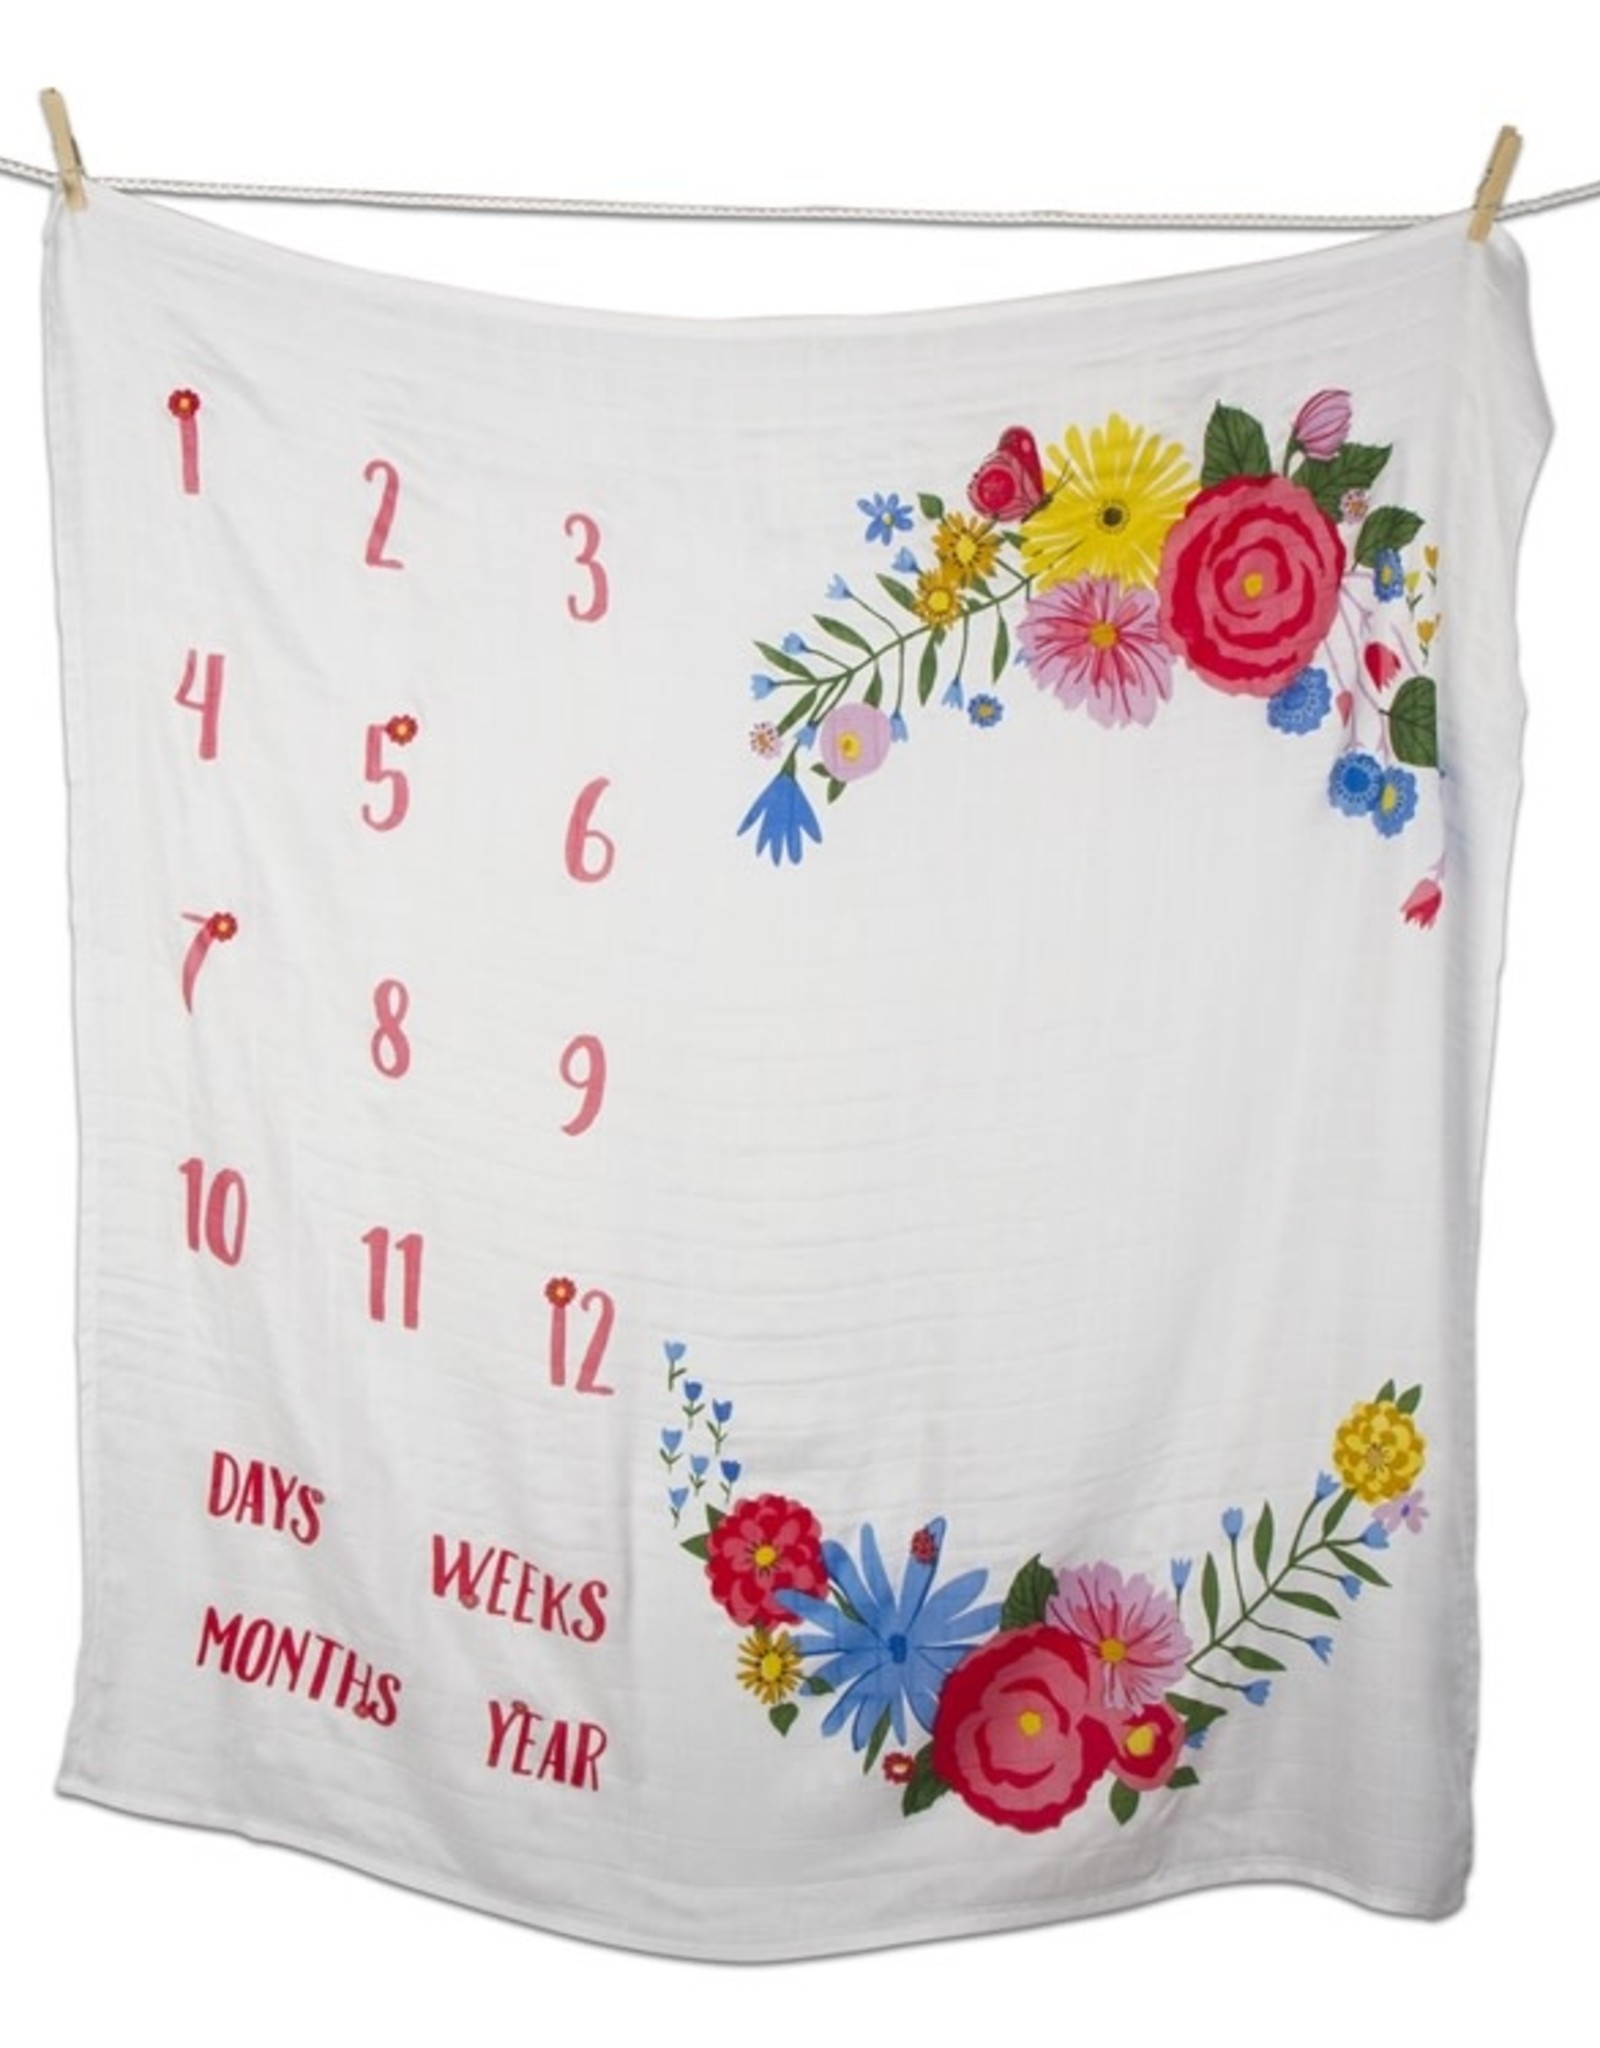 TAG FLORAL MILESTONE PHOTO SWADDLE